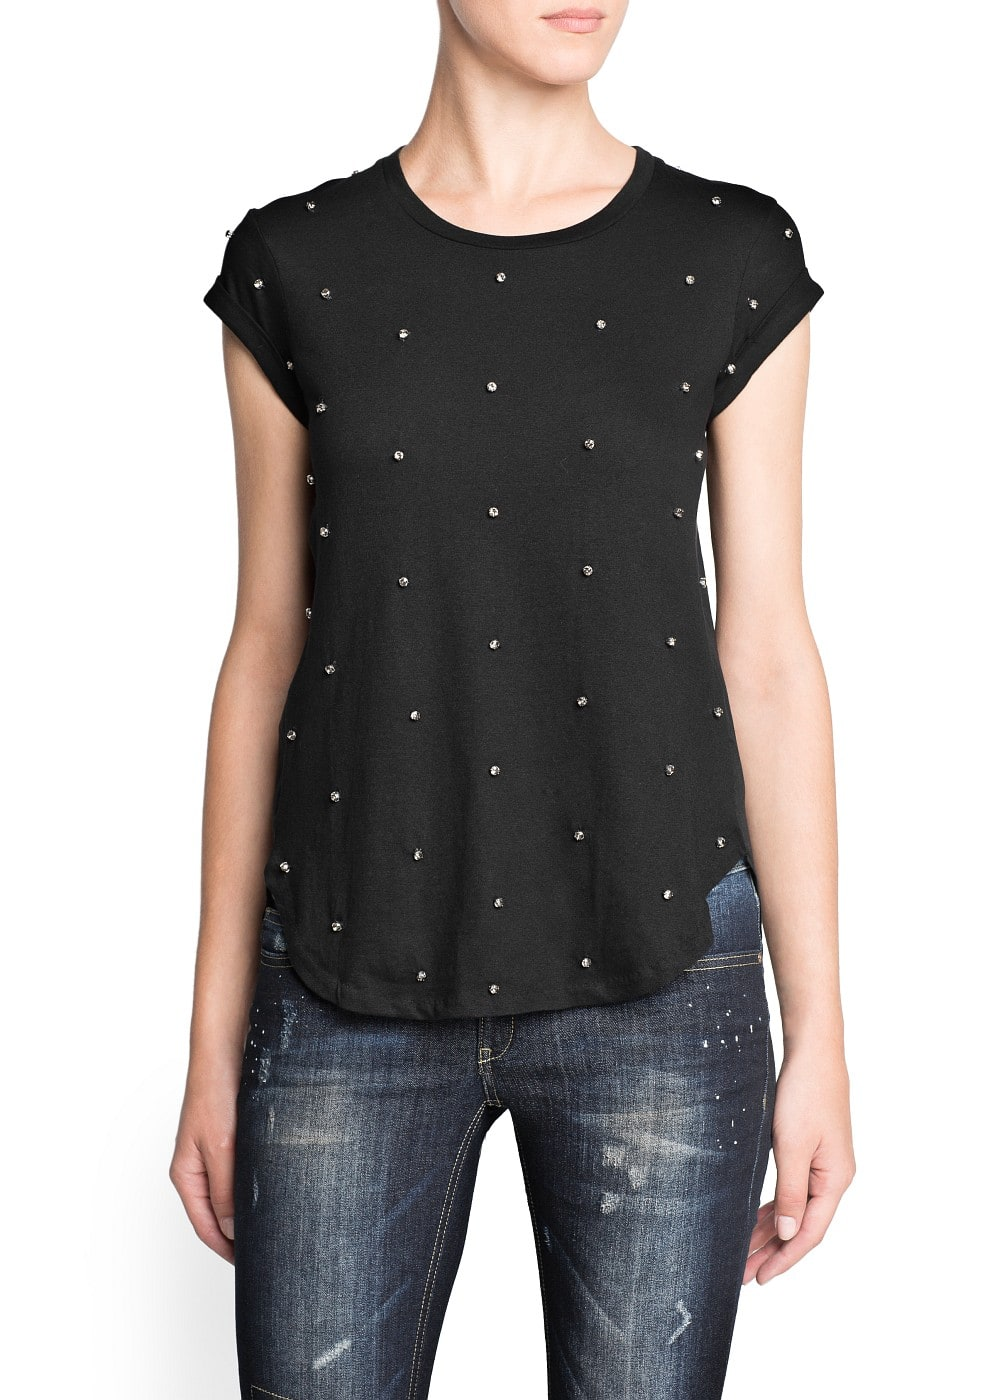 Crystal embellishment cotton t-shirt | MANGO